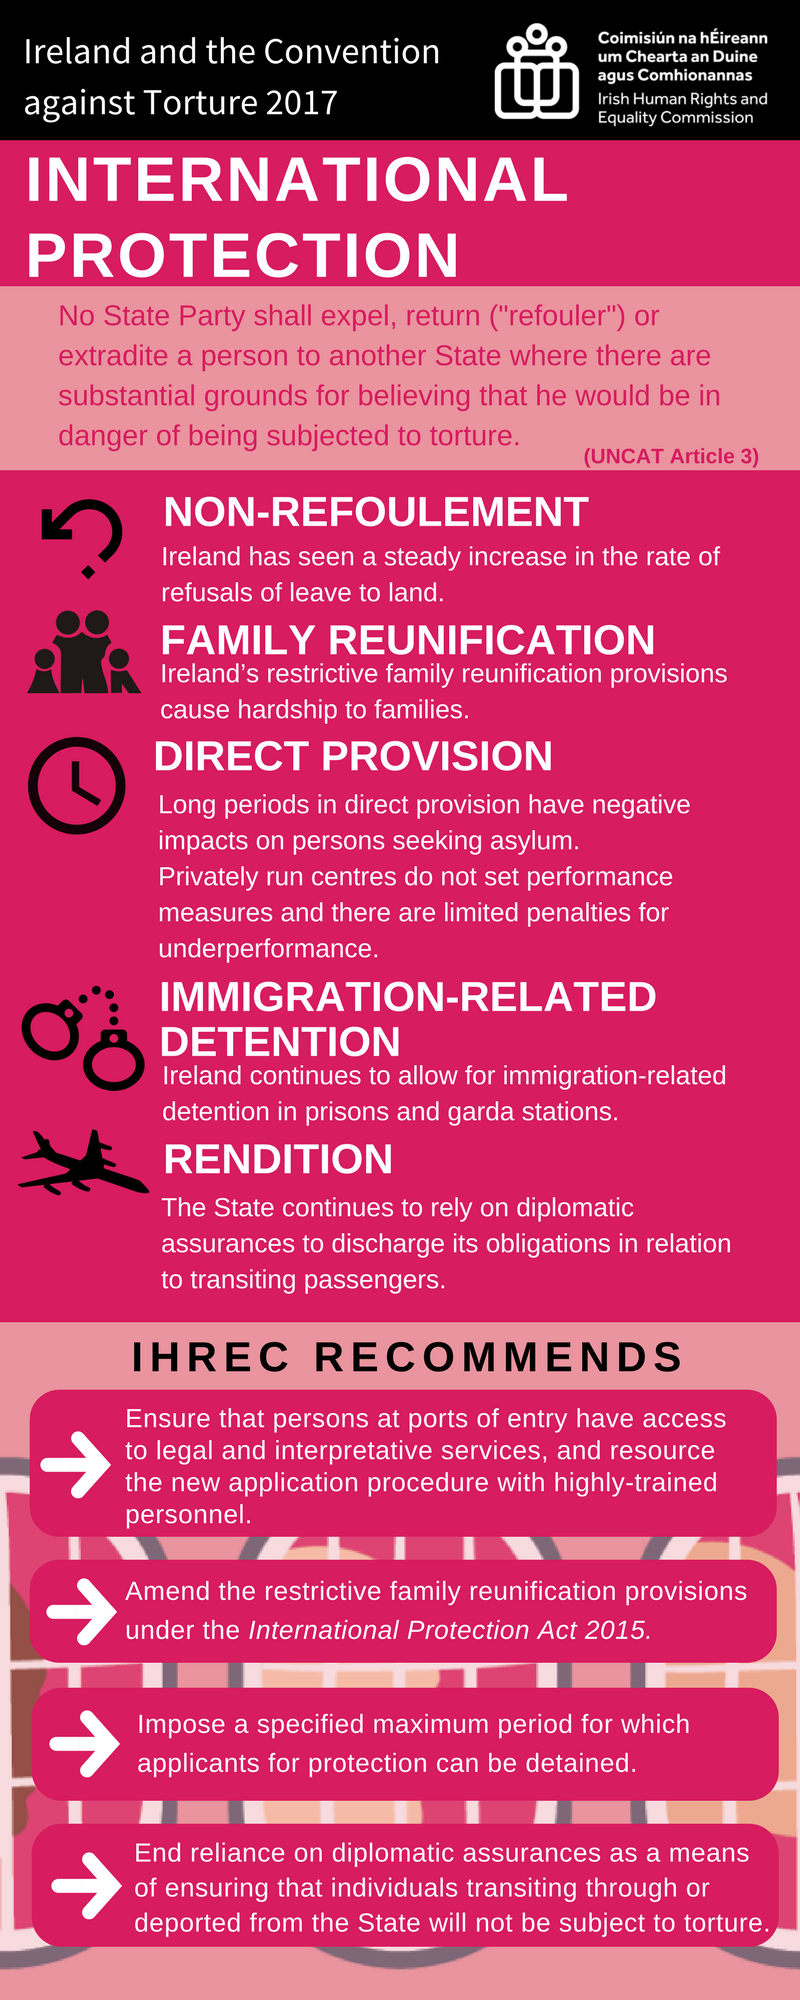 #FamilyReunification, #DirectProvision & #HumanRights of refugees are raised in our #UNCAT report. #UNCAT61 https://t.co/mlpDYcbQ31 https://t.co/Ifa4VuUCiT